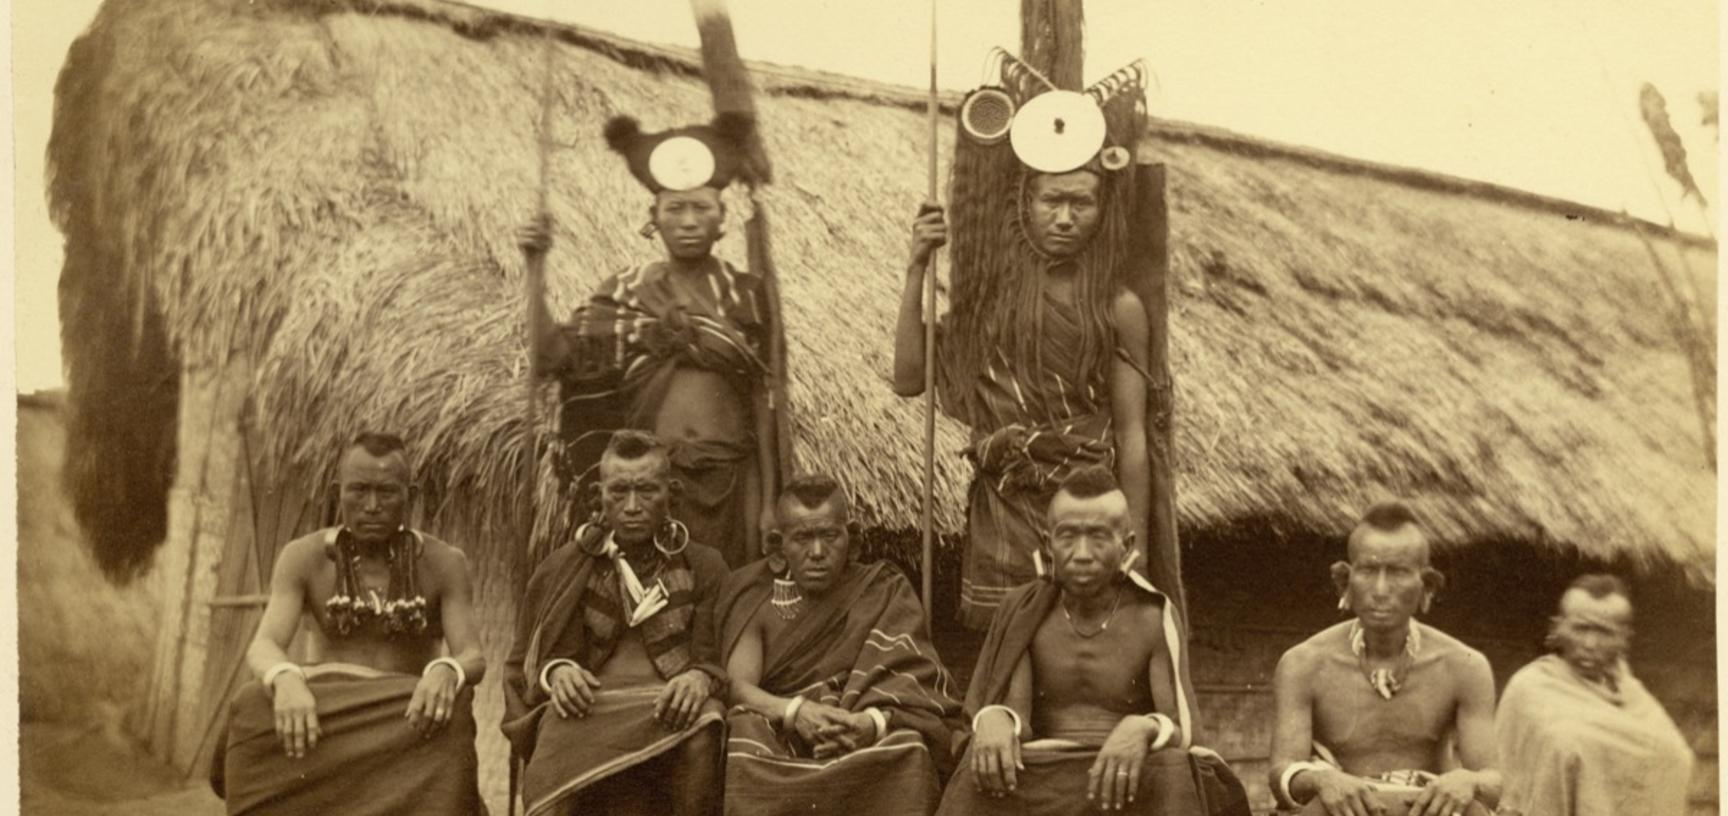 'Tangkhul Nagas' (handwritten caption). Group portrait of Tangkhul Naga men, standing and sitting, pictured in front of a building. Photographer unknown. Naga Hills District of Assam (now in Manipur), India. 1873–1874.